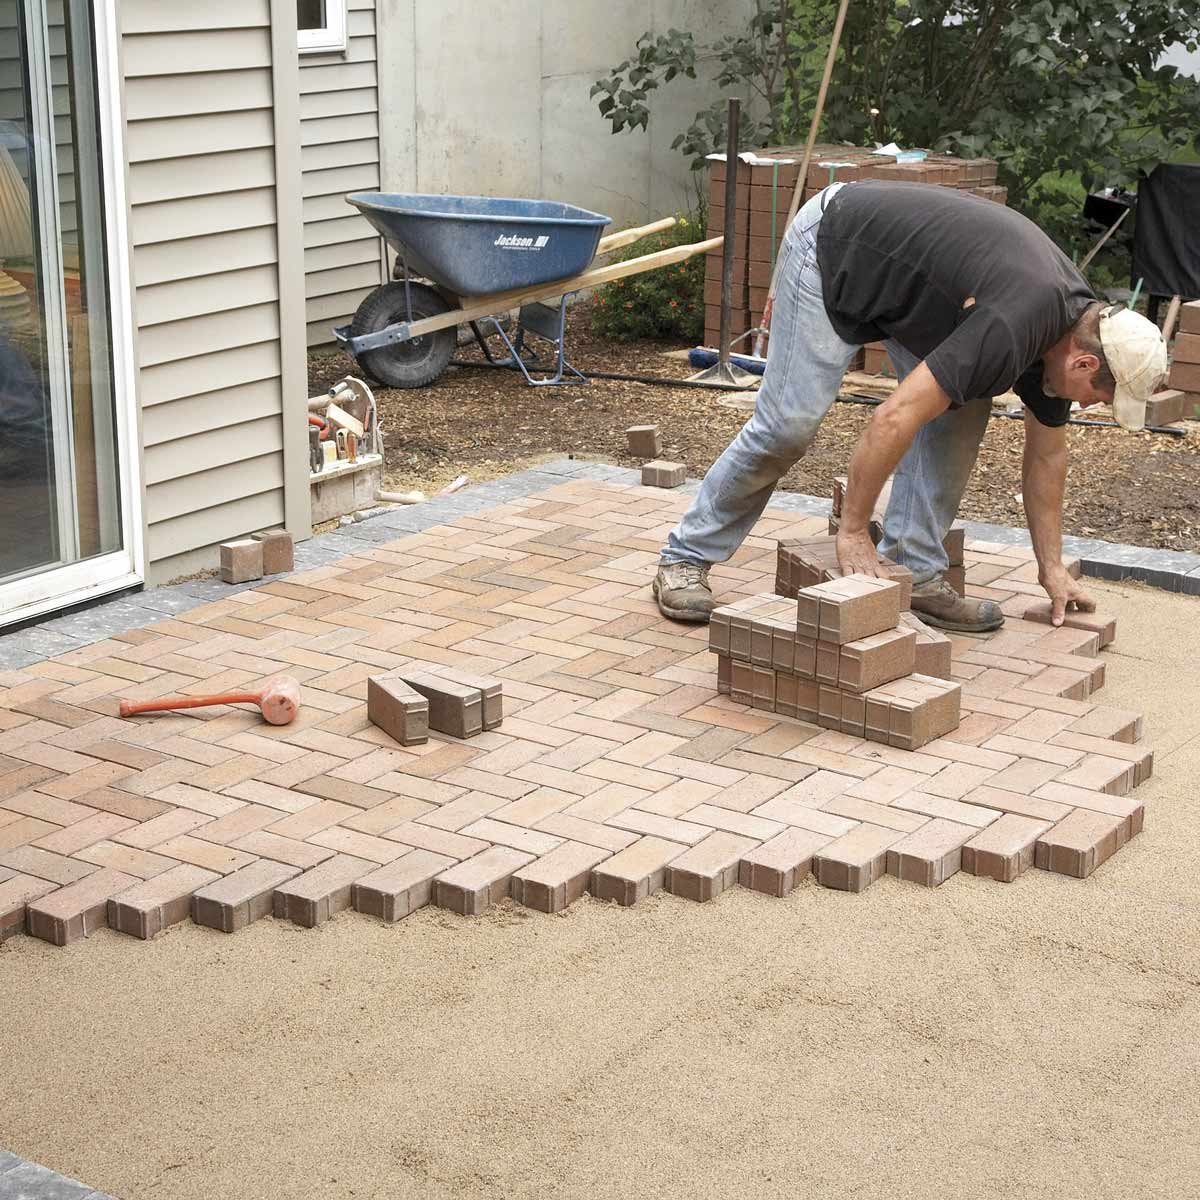 Pavers-Odessa TX Professional Landscapers & Outdoor Living Designs-We offer Landscape Design, Outdoor Patios & Pergolas, Outdoor Living Spaces, Stonescapes, Residential & Commercial Landscaping, Irrigation Installation & Repairs, Drainage Systems, Landscape Lighting, Outdoor Living Spaces, Tree Service, Lawn Service, and more.